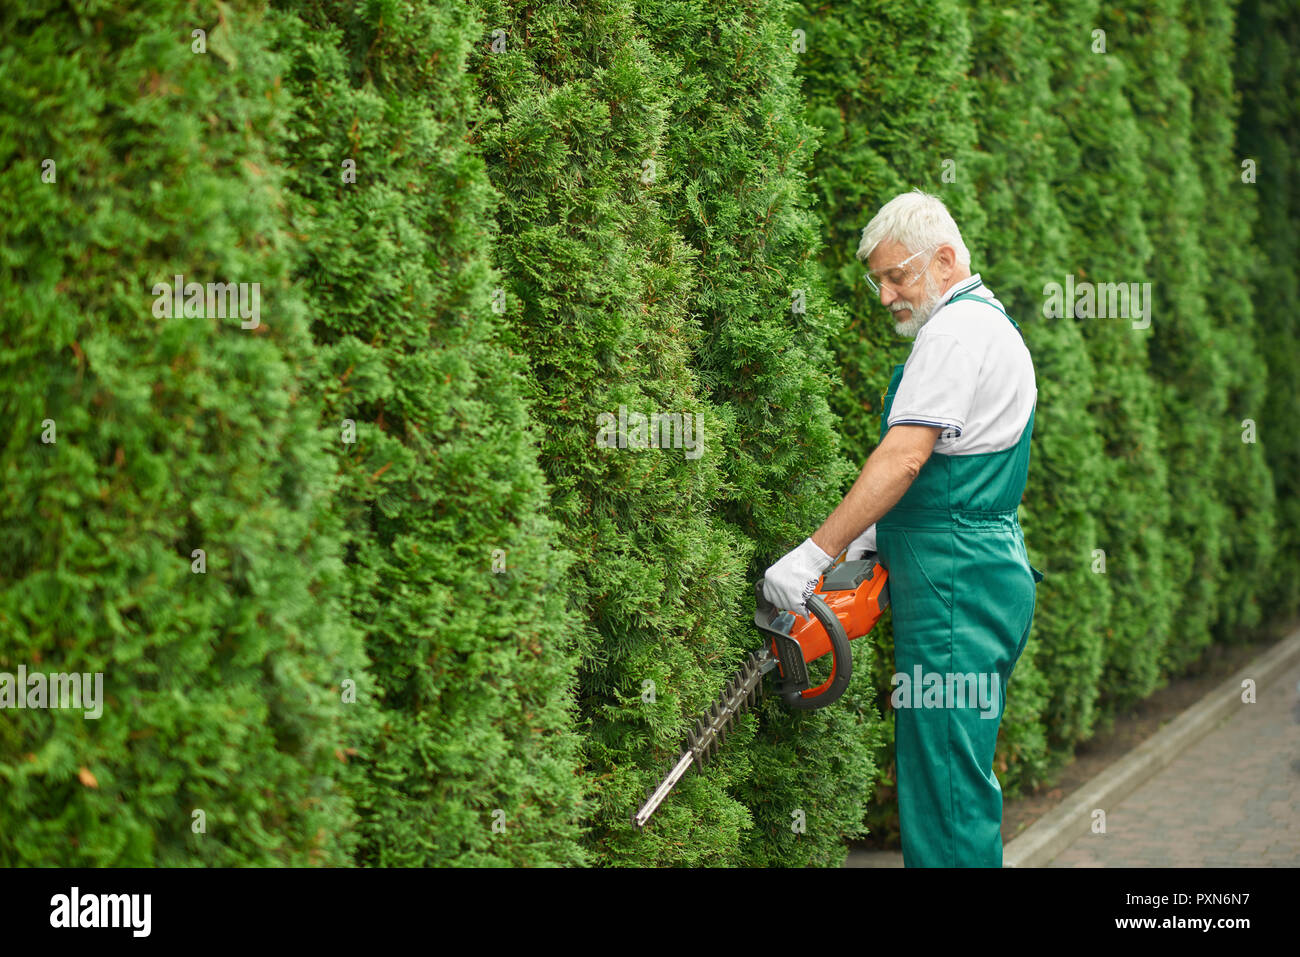 Gray haired bearded male gardener, wearing in special green overalls and protective glasses, cutting bushes of white cedar near house. Adult man landscaping bushes with petrol hedge cutter. - Stock Image